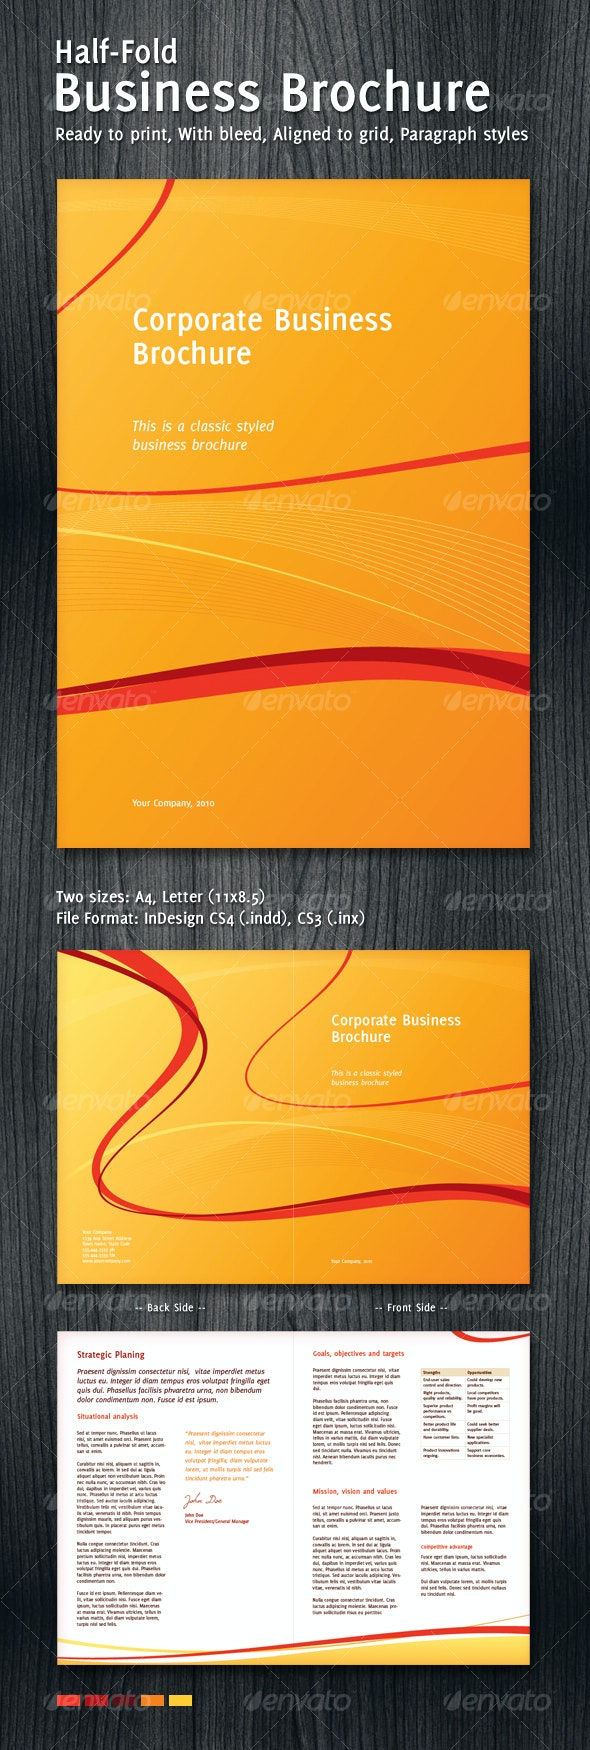 Half-Hold Corporate Business Brochure - Corporate Brochures